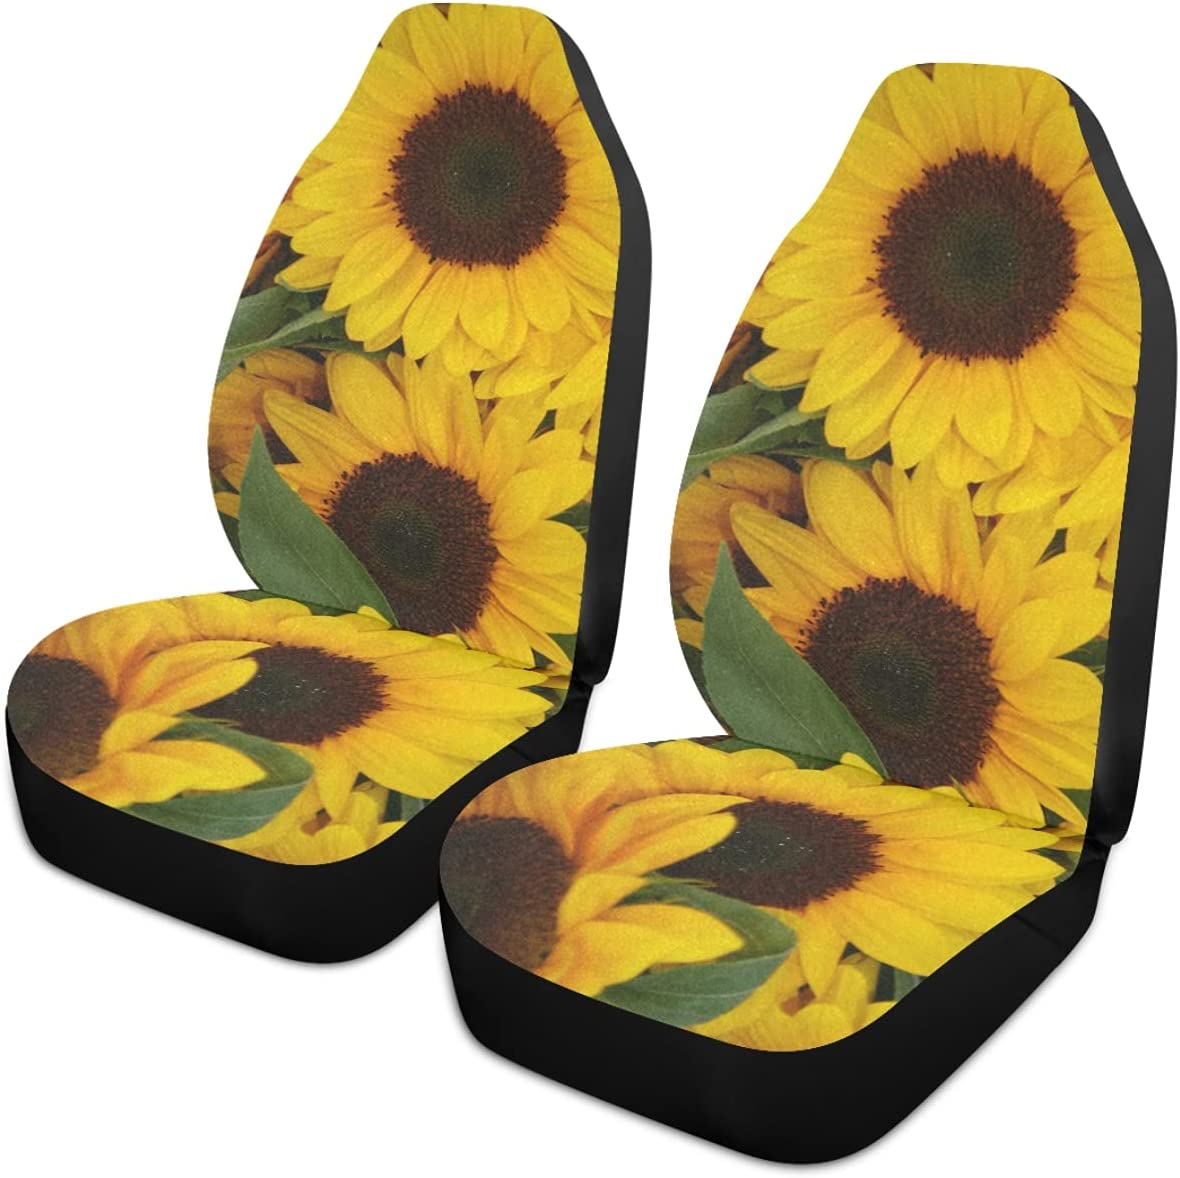 Oarencol Yellow Sunflowers Baltimore Mall Car Ranking TOP17 Seat Front Covers Universal Auto